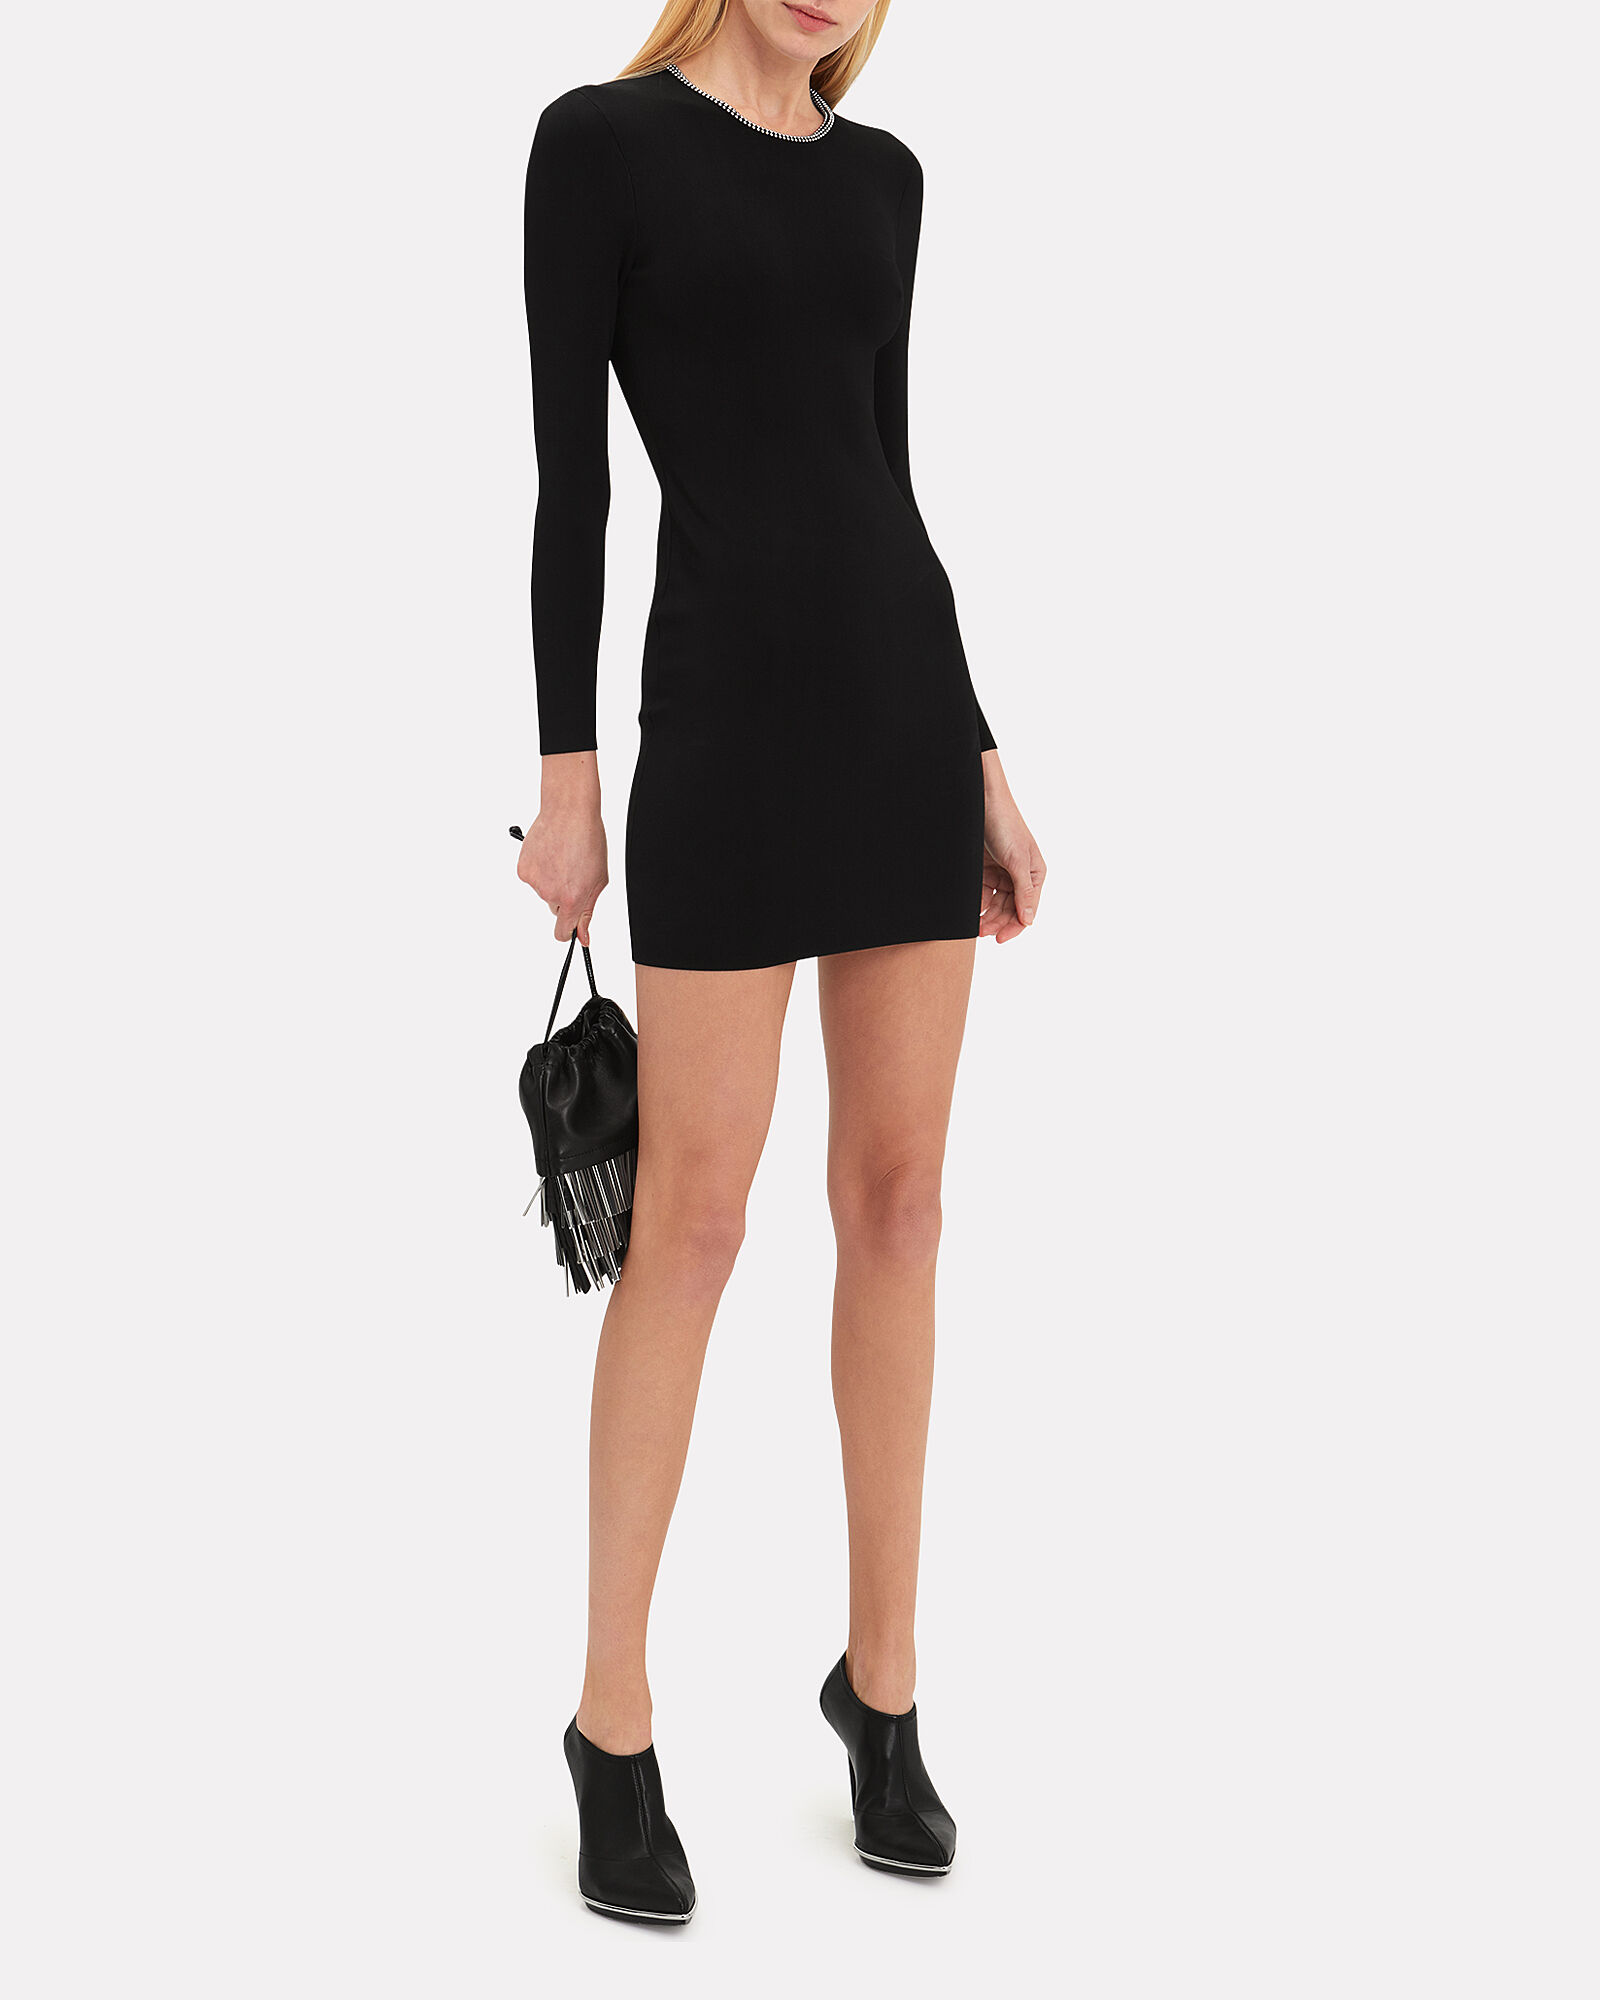 Ball Chain Black Mini Dress, BLACK, hi-res